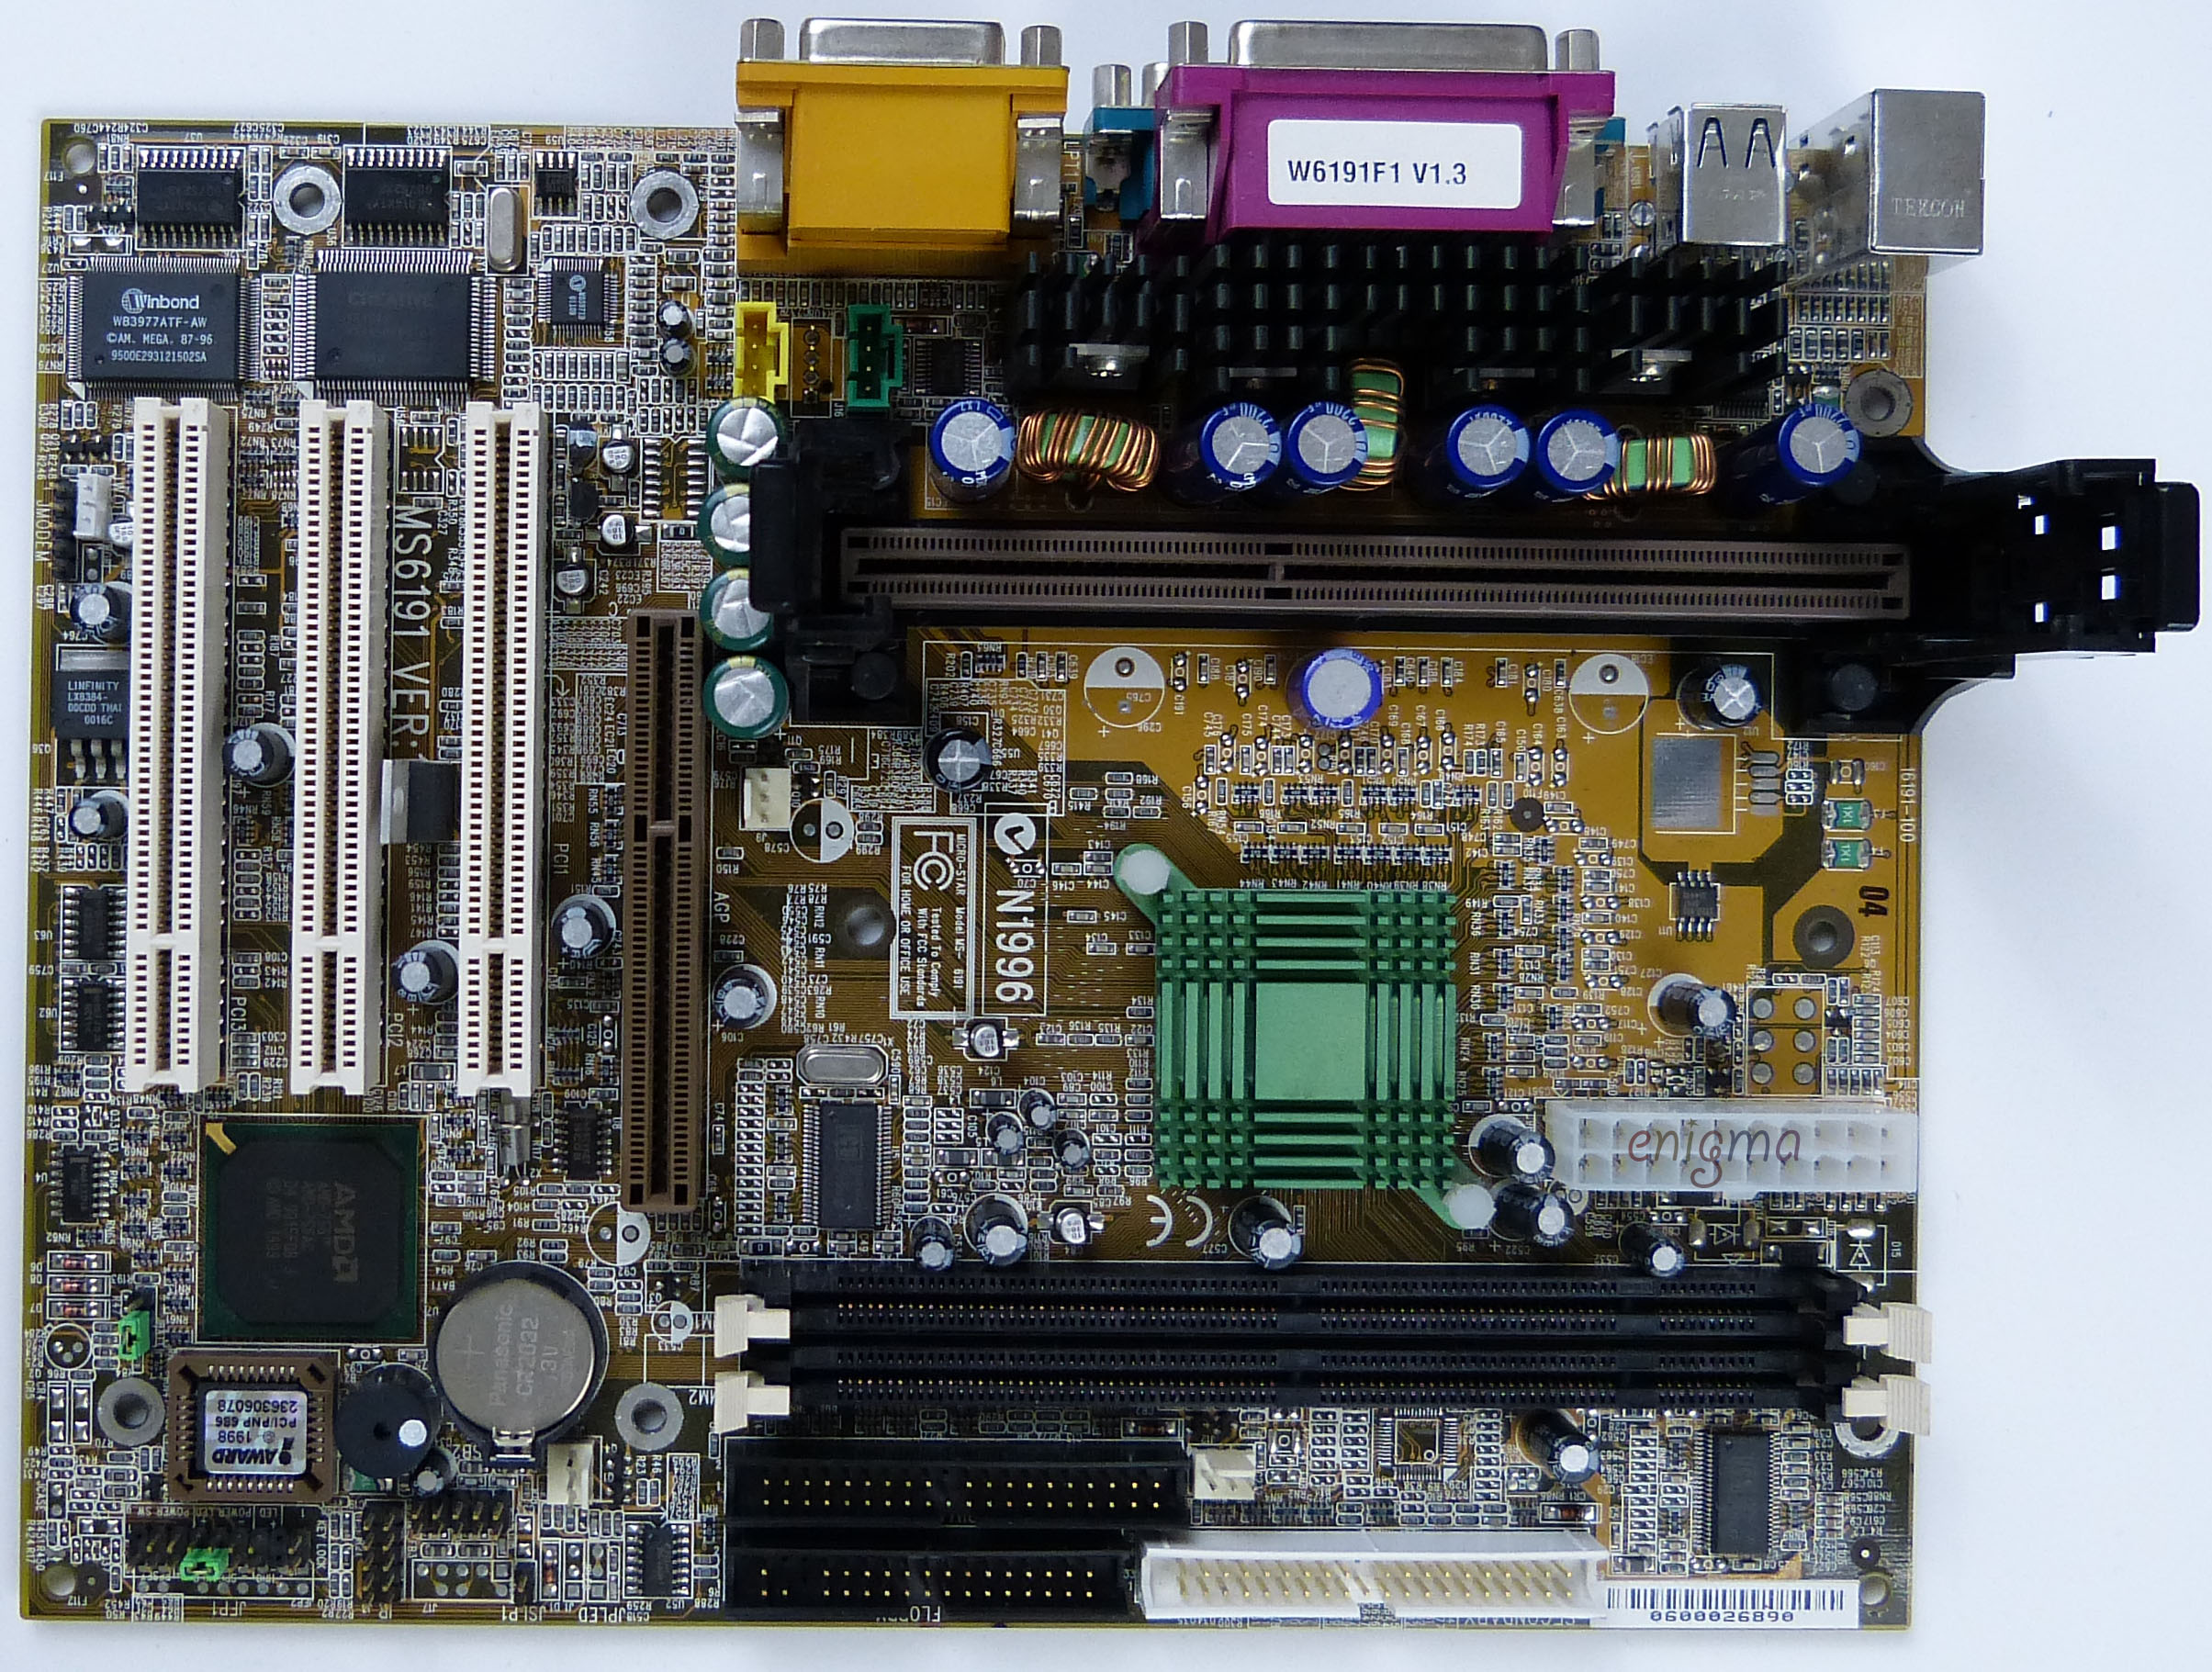 Phils Ultimate Vga Benchmark Database Projectods Mainboard Lx 310 Msi Ms6191